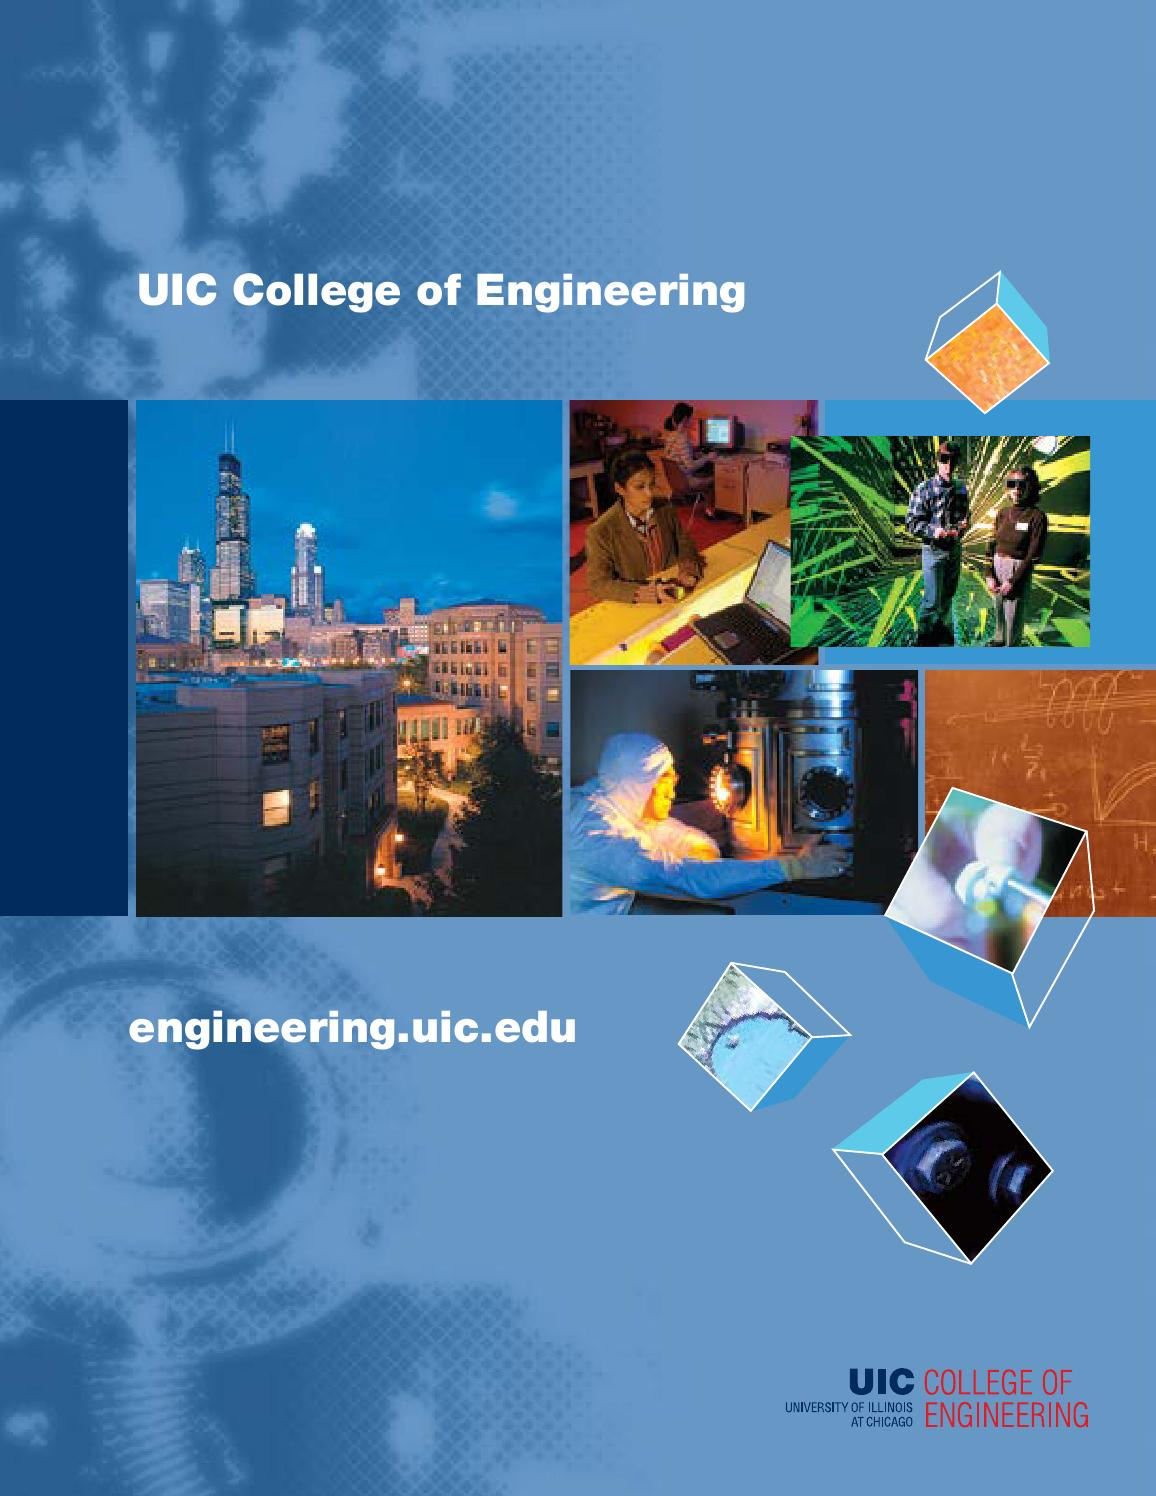 Uic college of engineering undergraduate brochure by uic for Placement brochure design